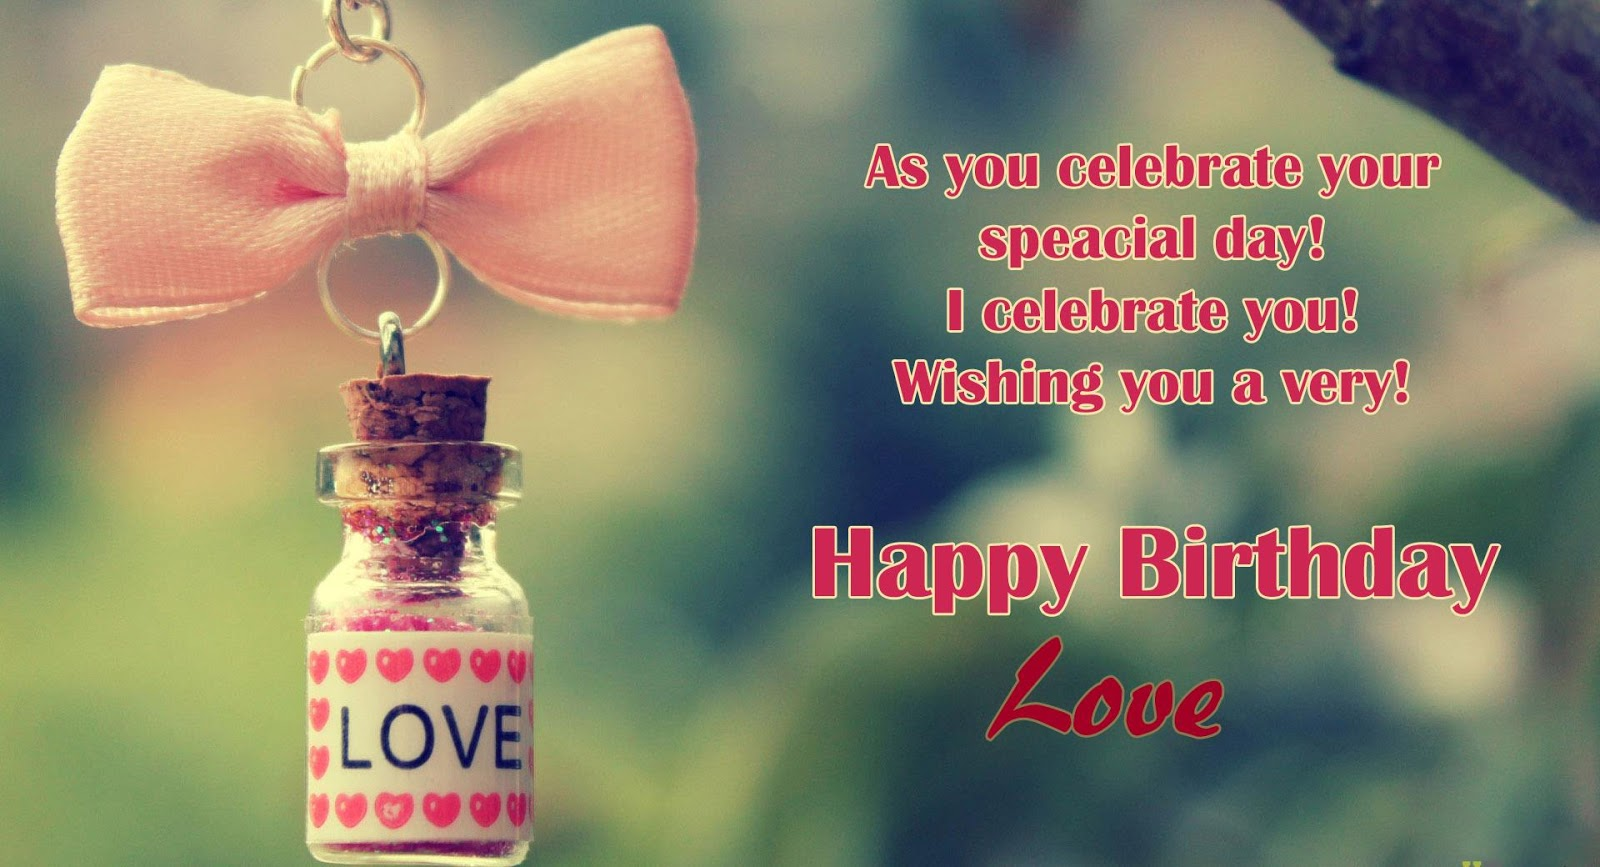 Romantic Birthday Greetings Sms Wishes Quotes for GF · Romantic True Love Short Quotes for WhatsApp Status